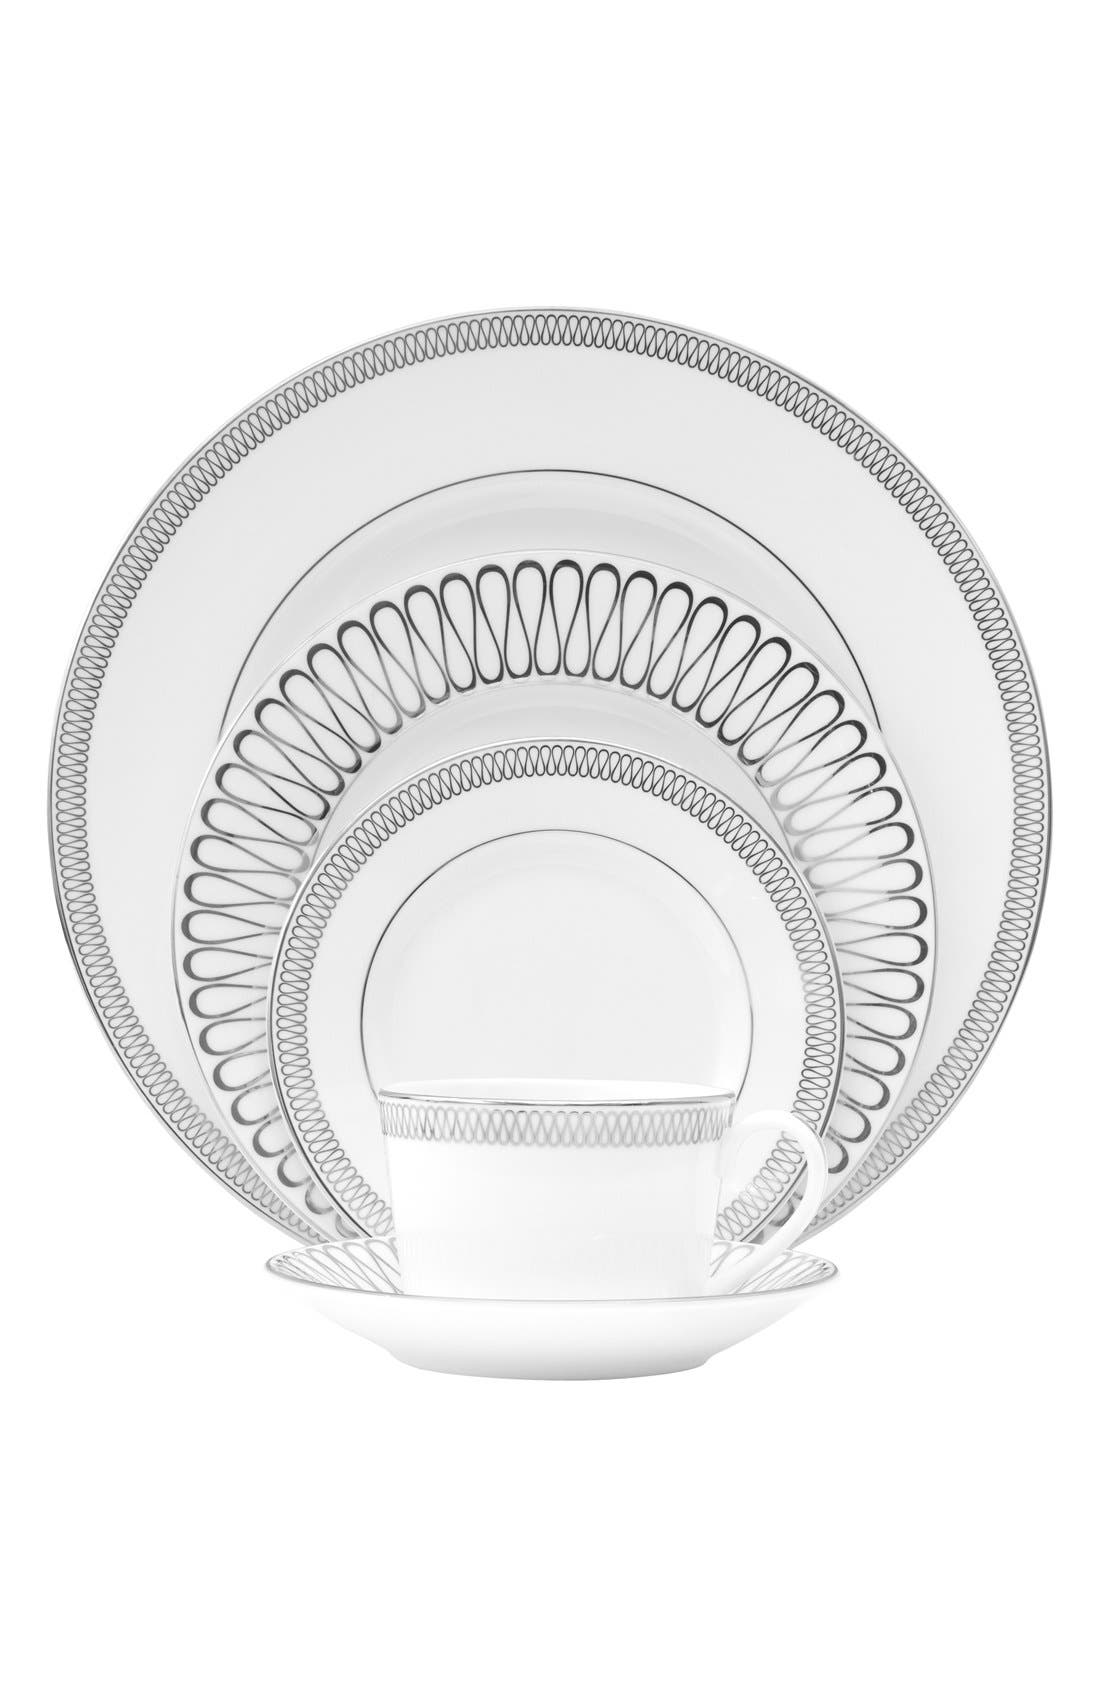 MoniqueLhuillierWaterford 'Opulence' 5-Piece China Place Setting,                         Main,                         color, Bone